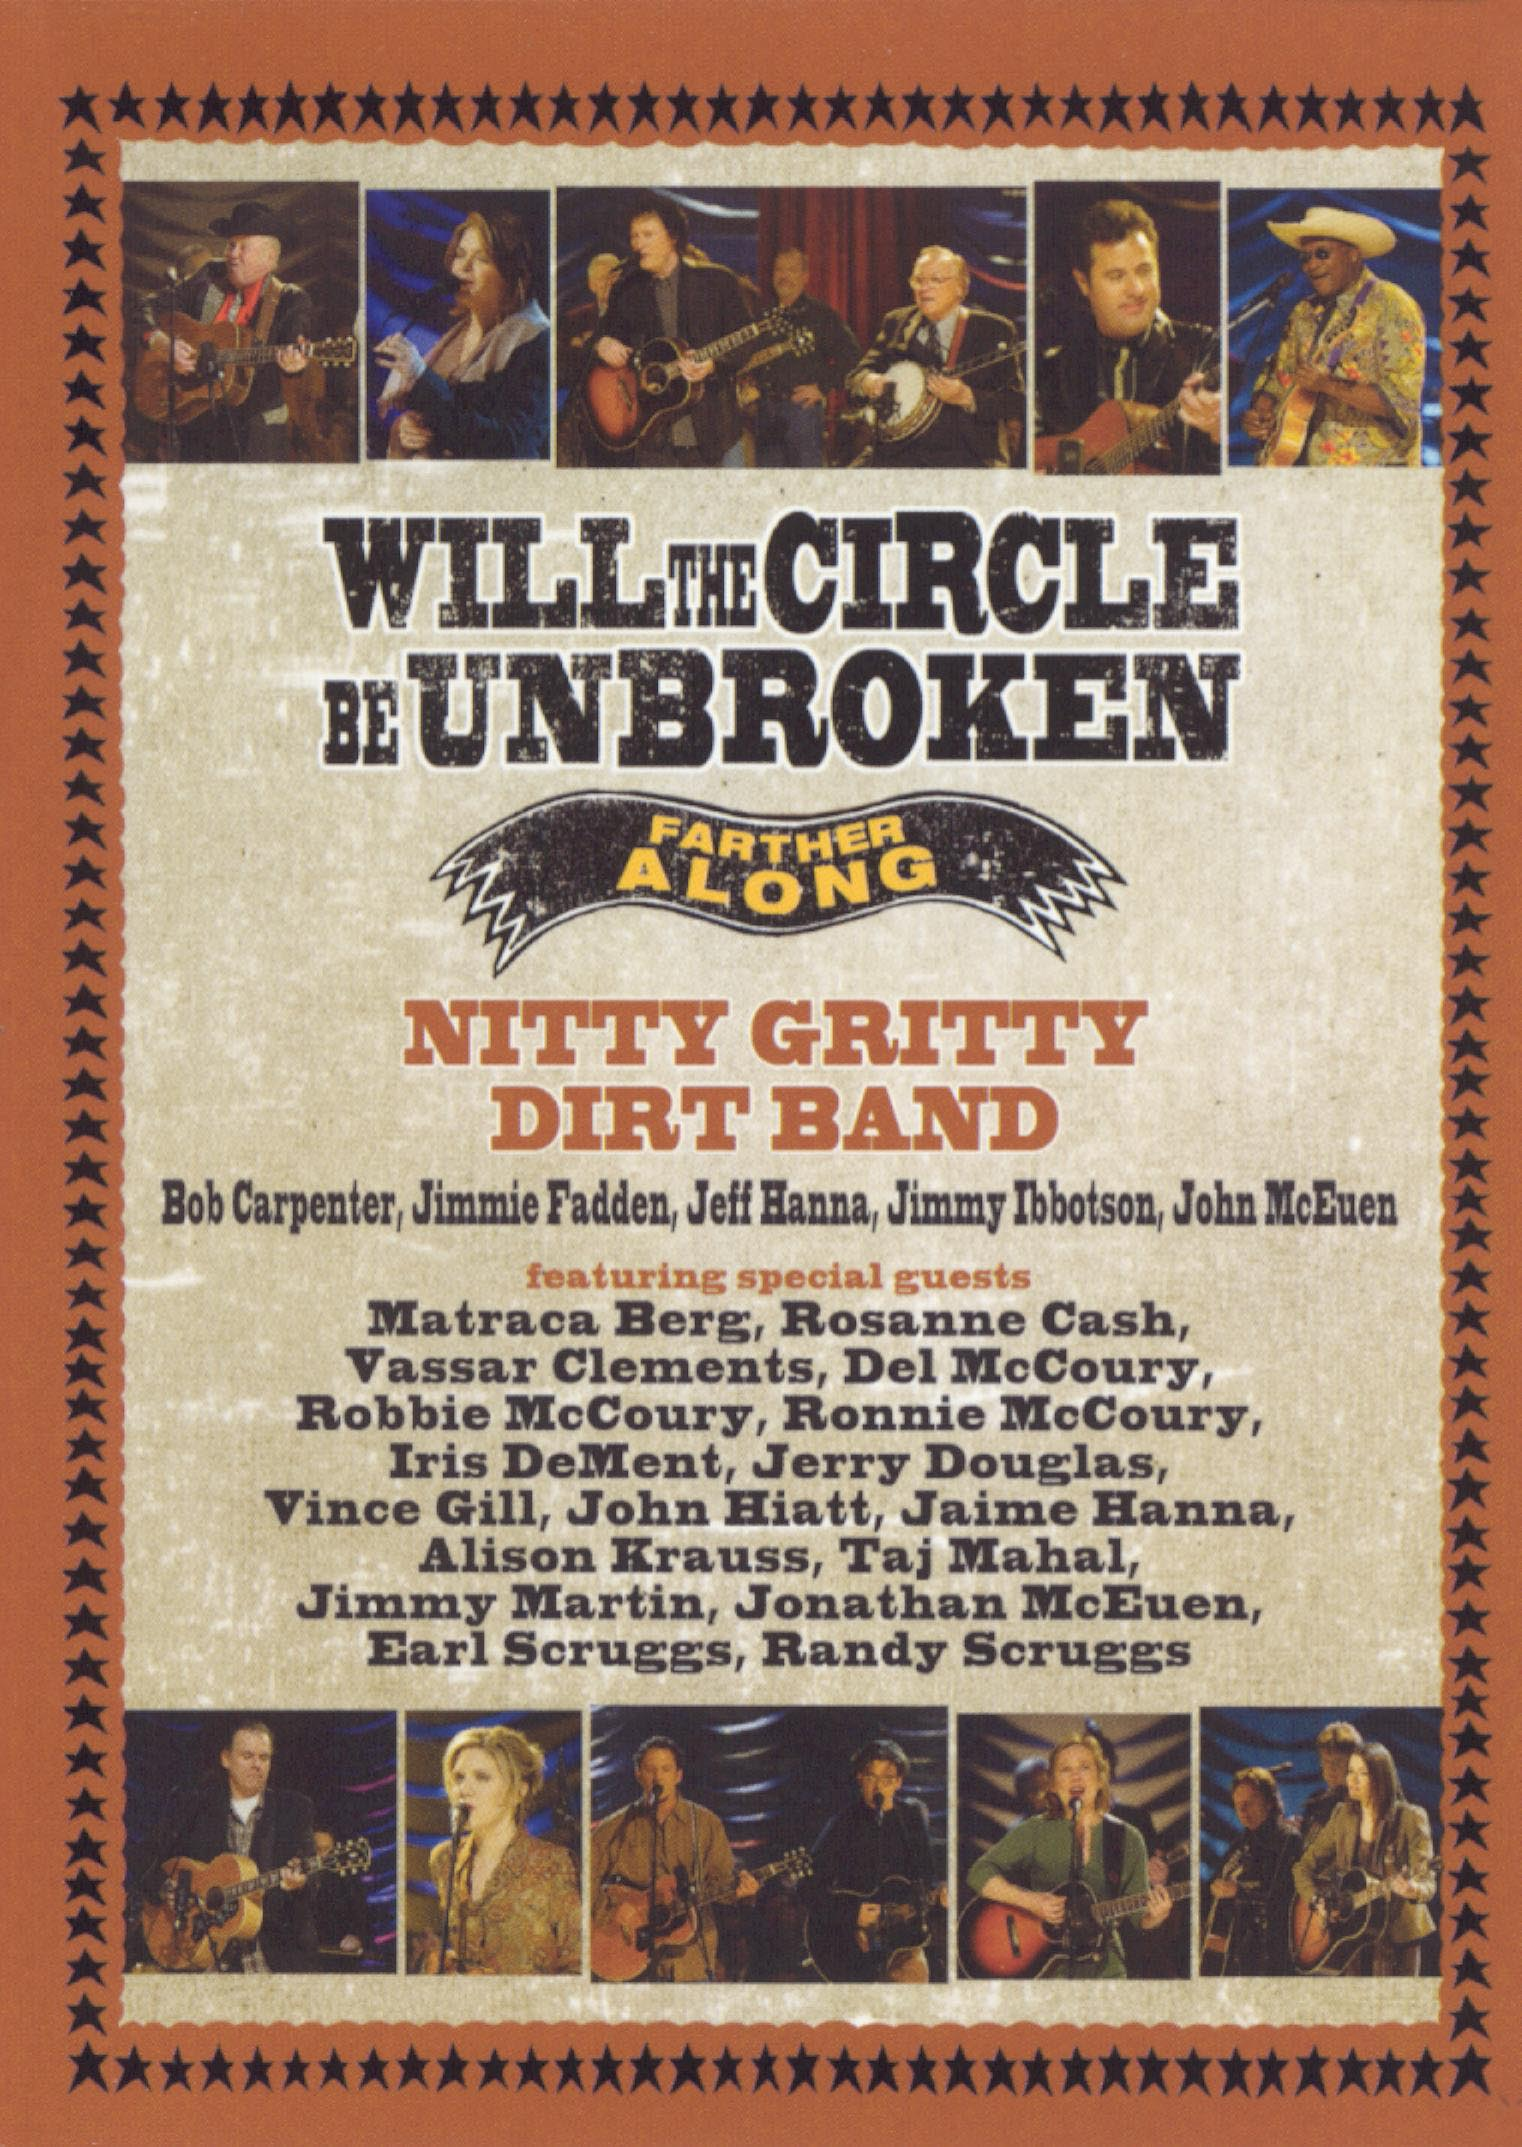 Nitty Gritty Dirt Band: Will The Circle Be Unbroken - Farther Along